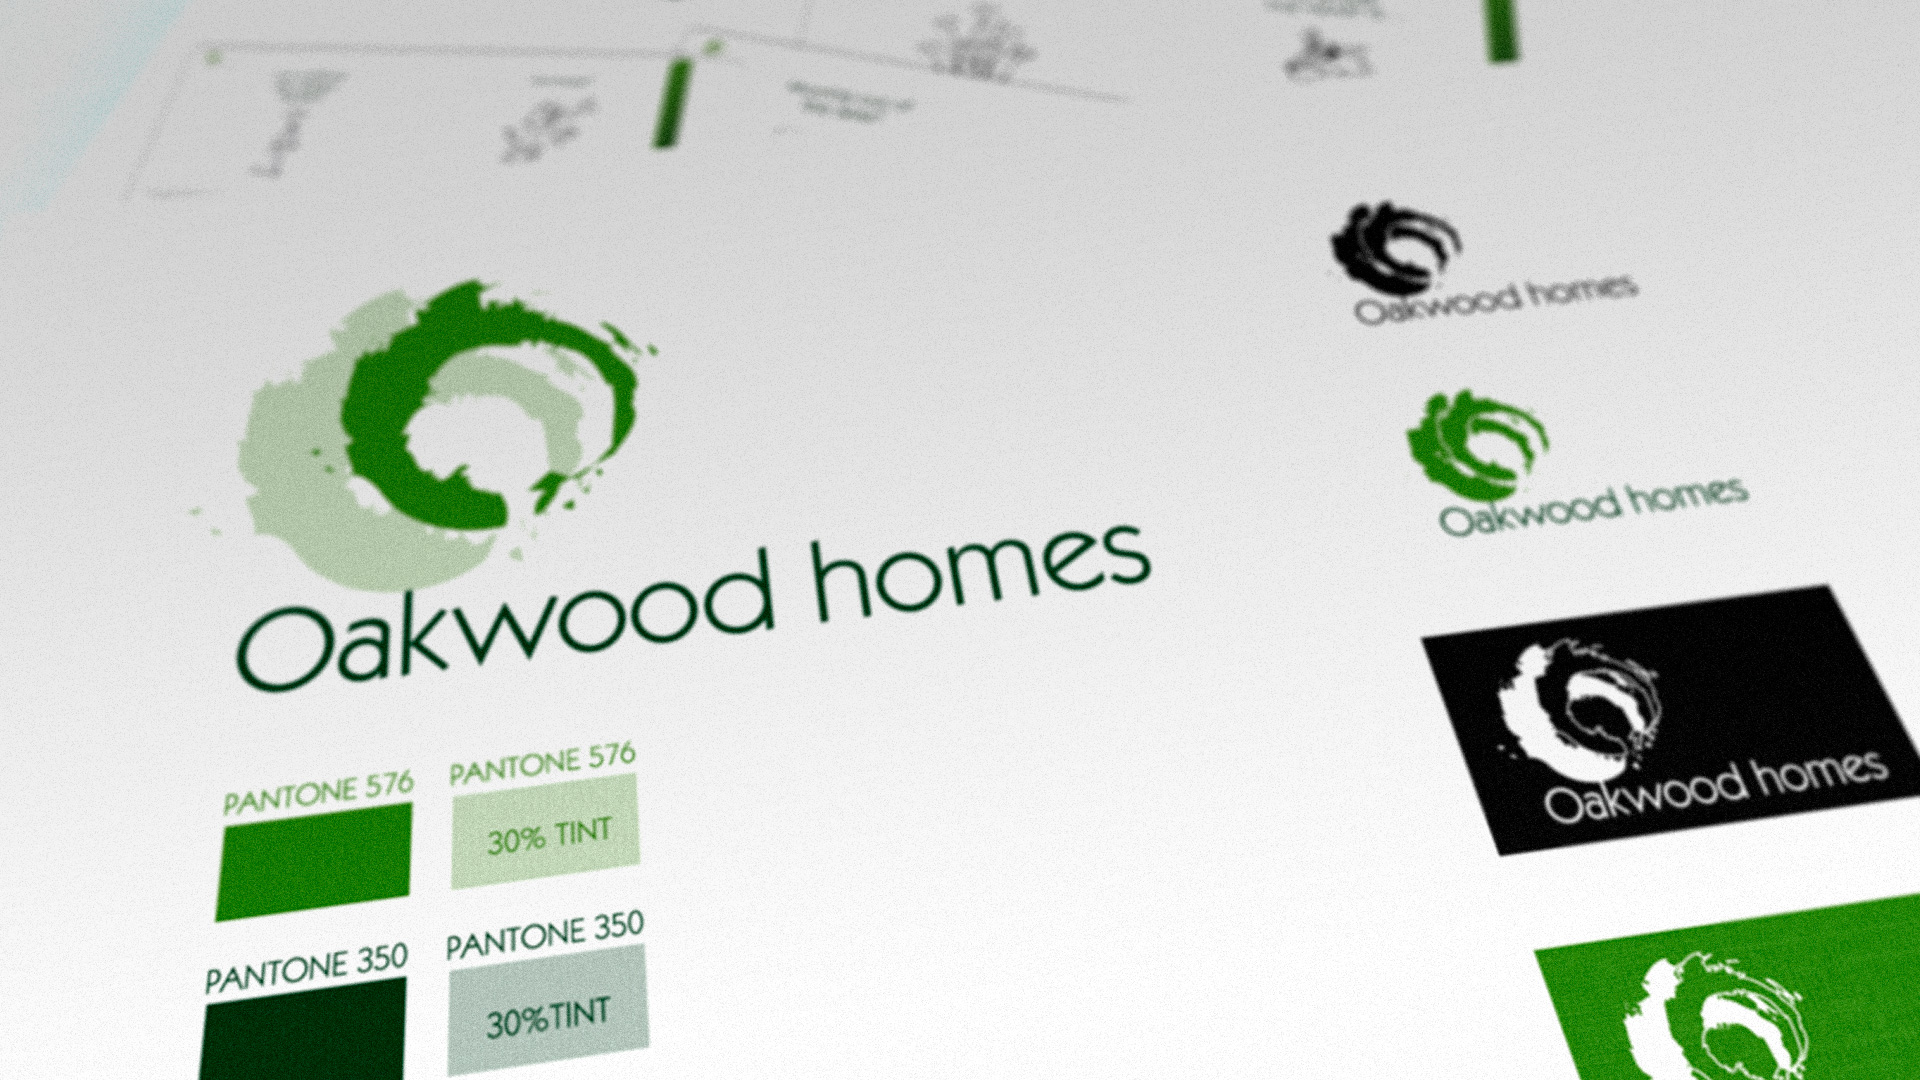 oakwood_homes2